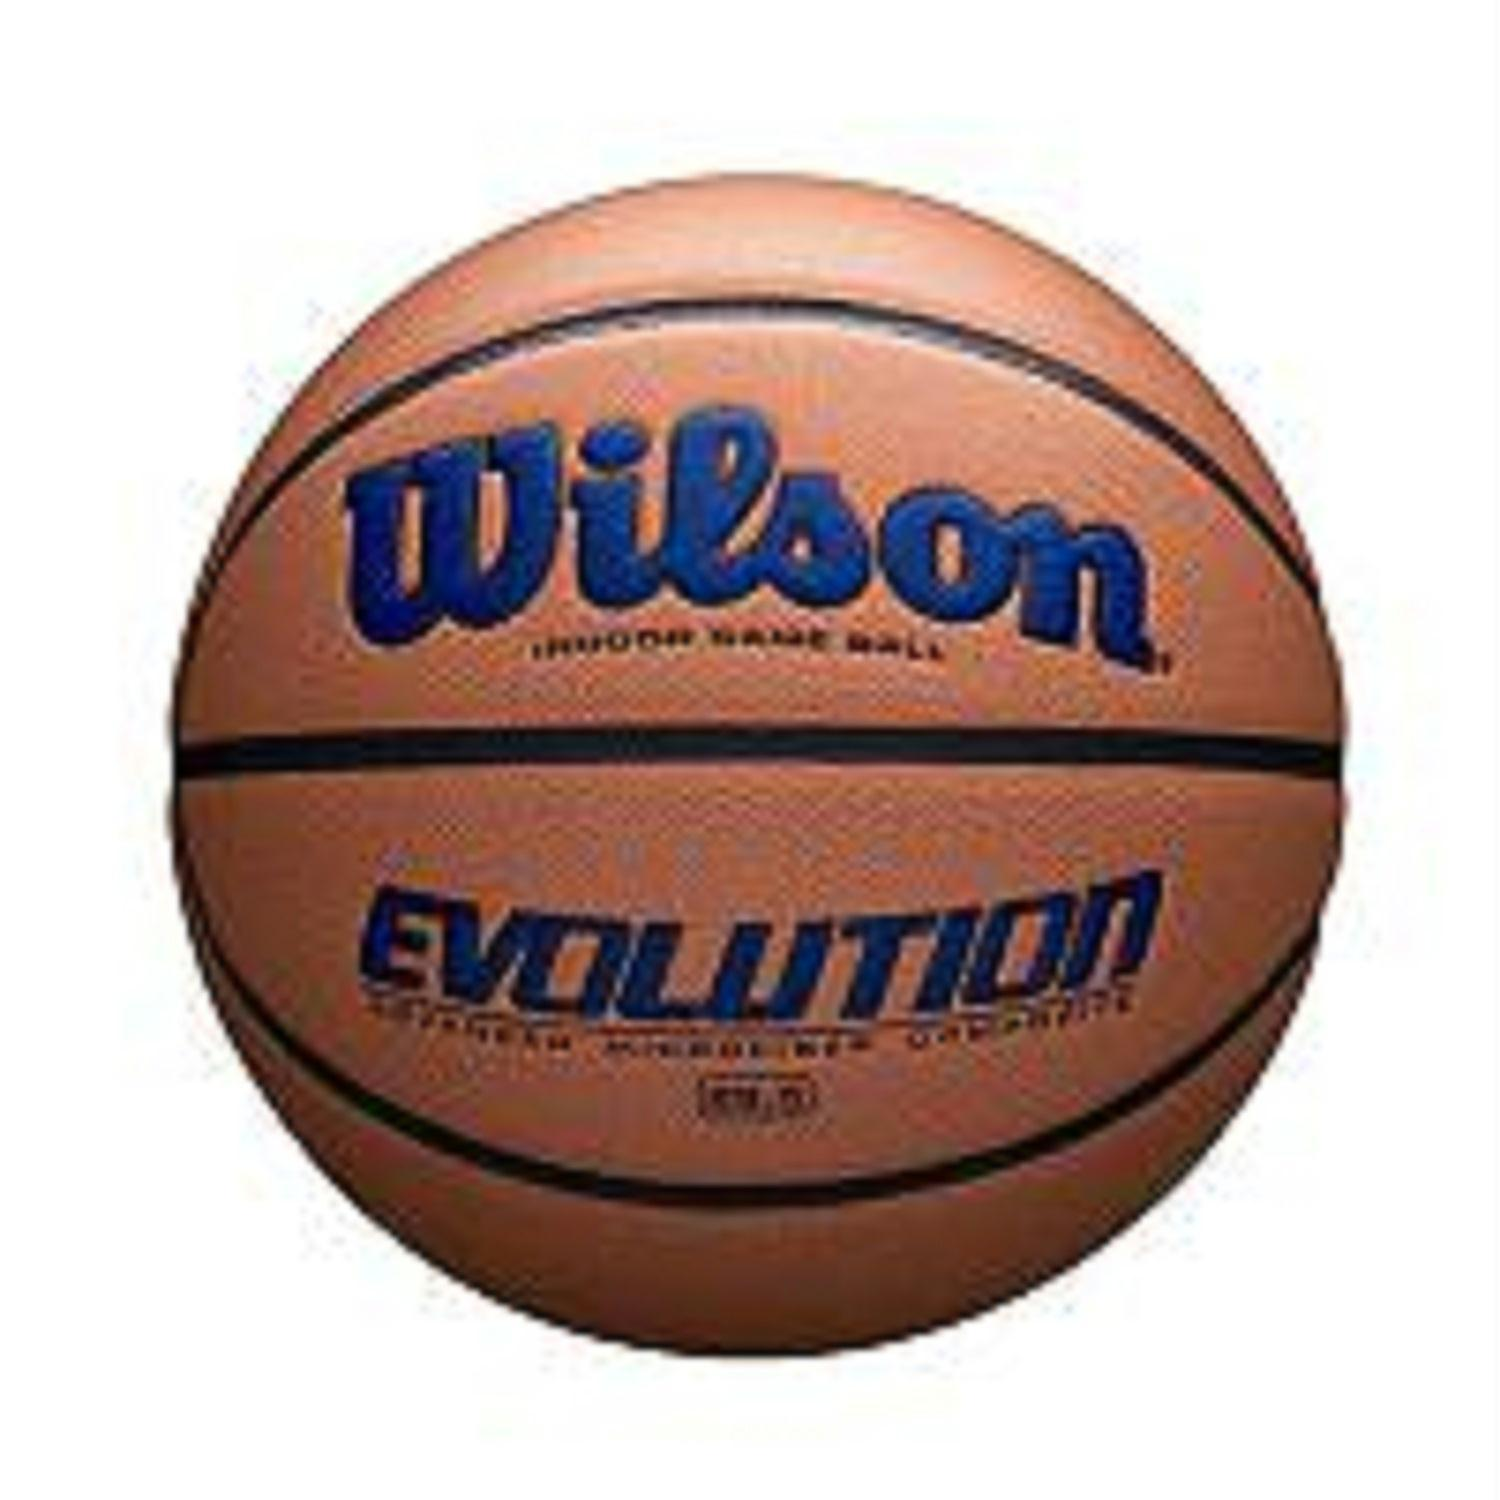 Wilson Evolution Intermediate Size Game Basketball Navy Basketball Sports Basketball Indoor Basketball Hoop